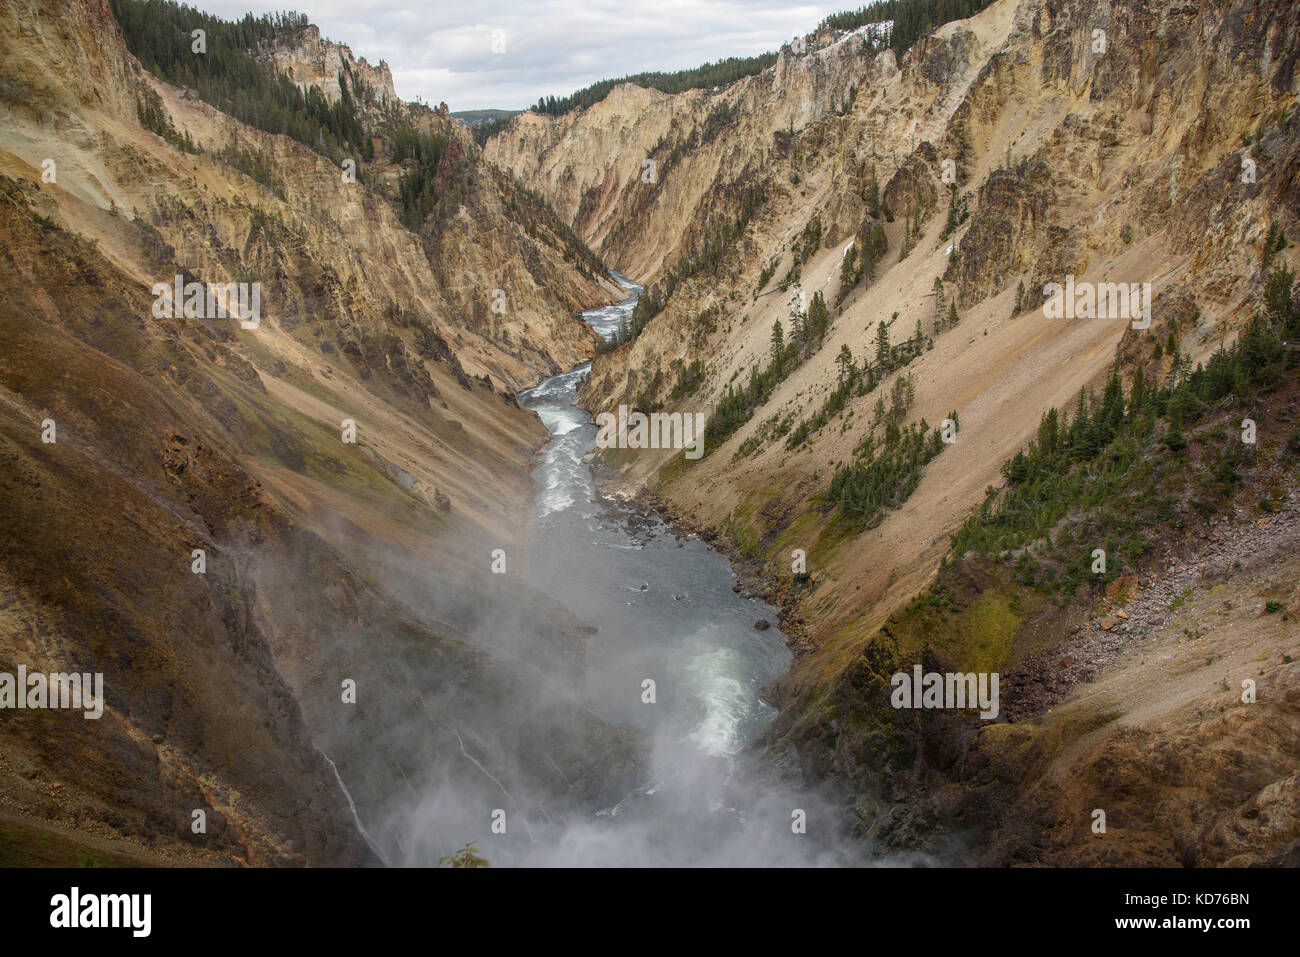 Grand Canyon of the Yellowstone at Yellowstone National Park - Stock Image